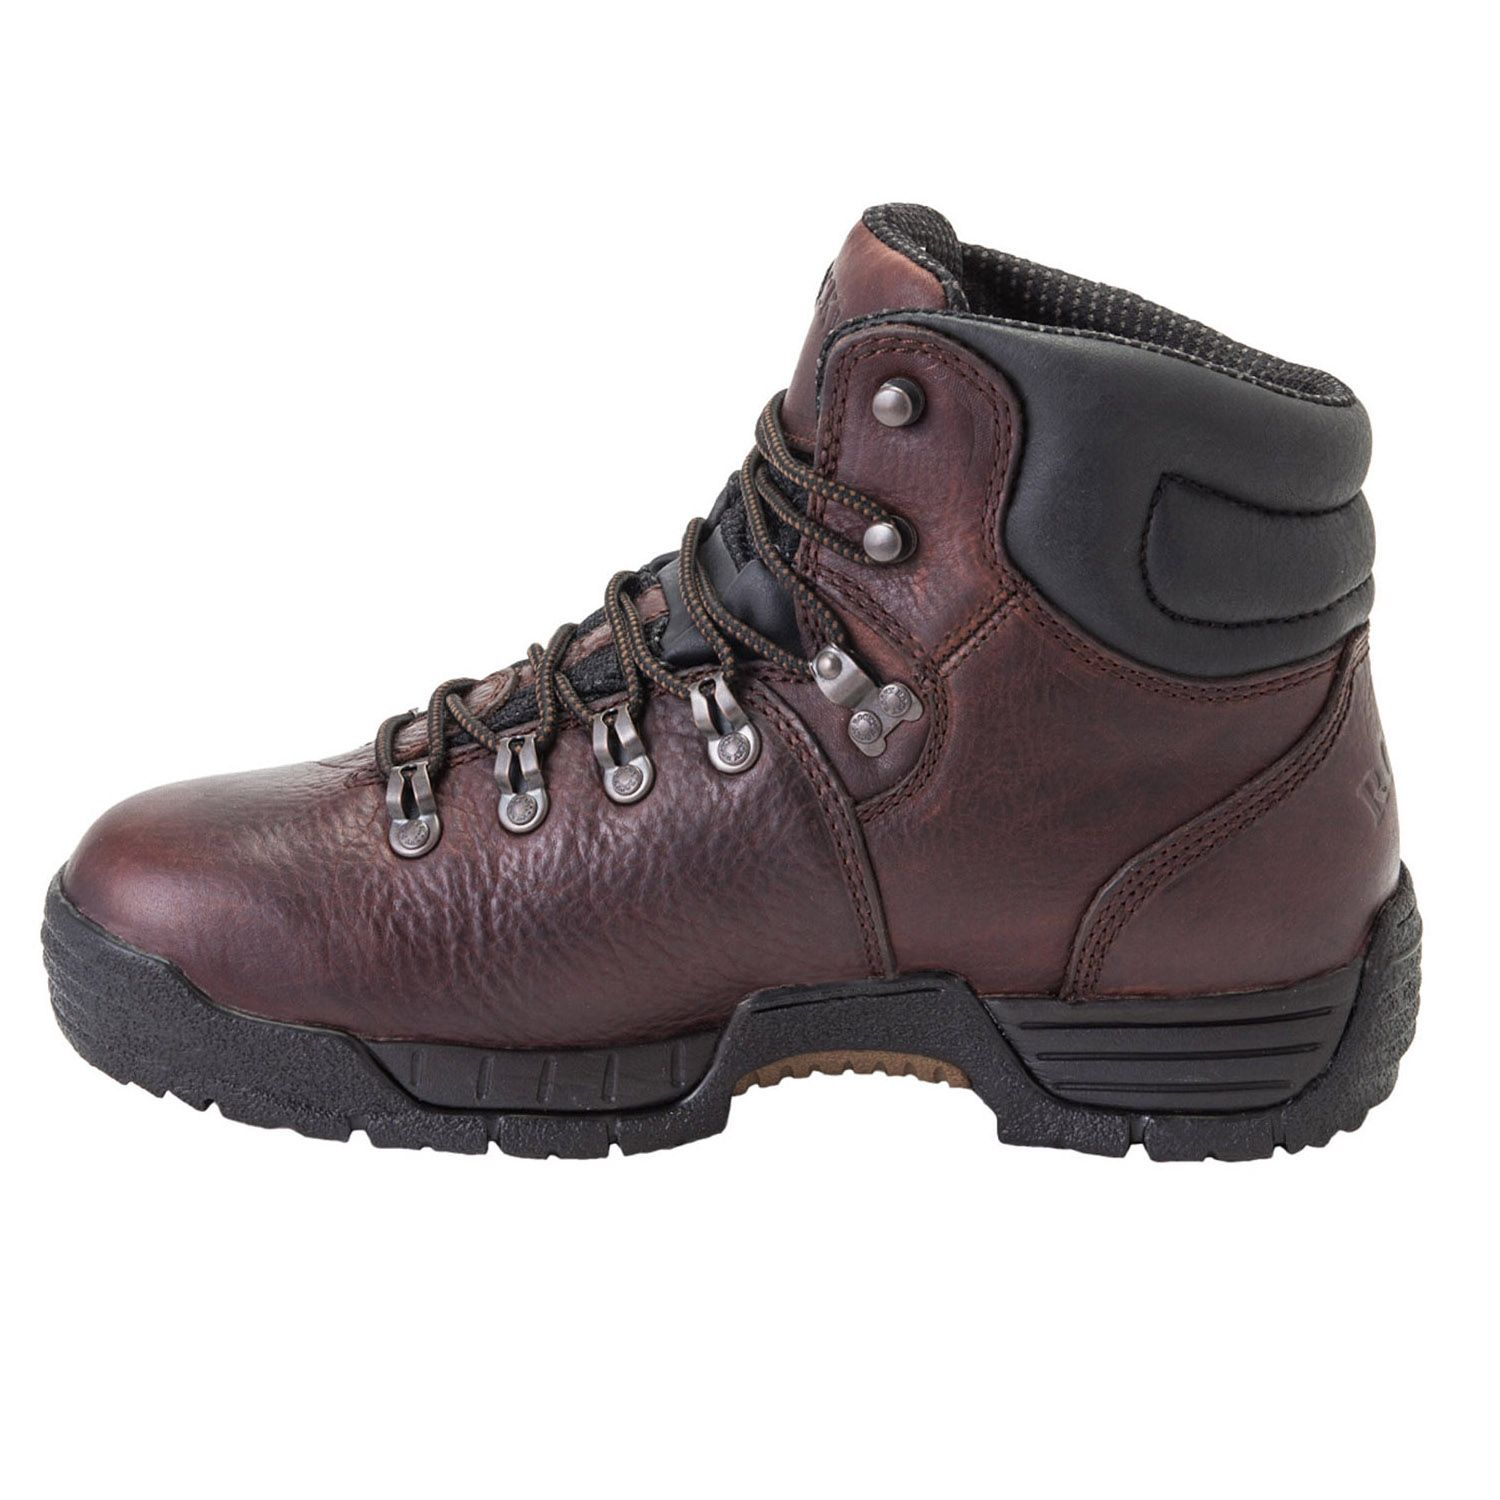 Shop Timberland Roll Top Outdoors Men's Shoes 8 D(M) US